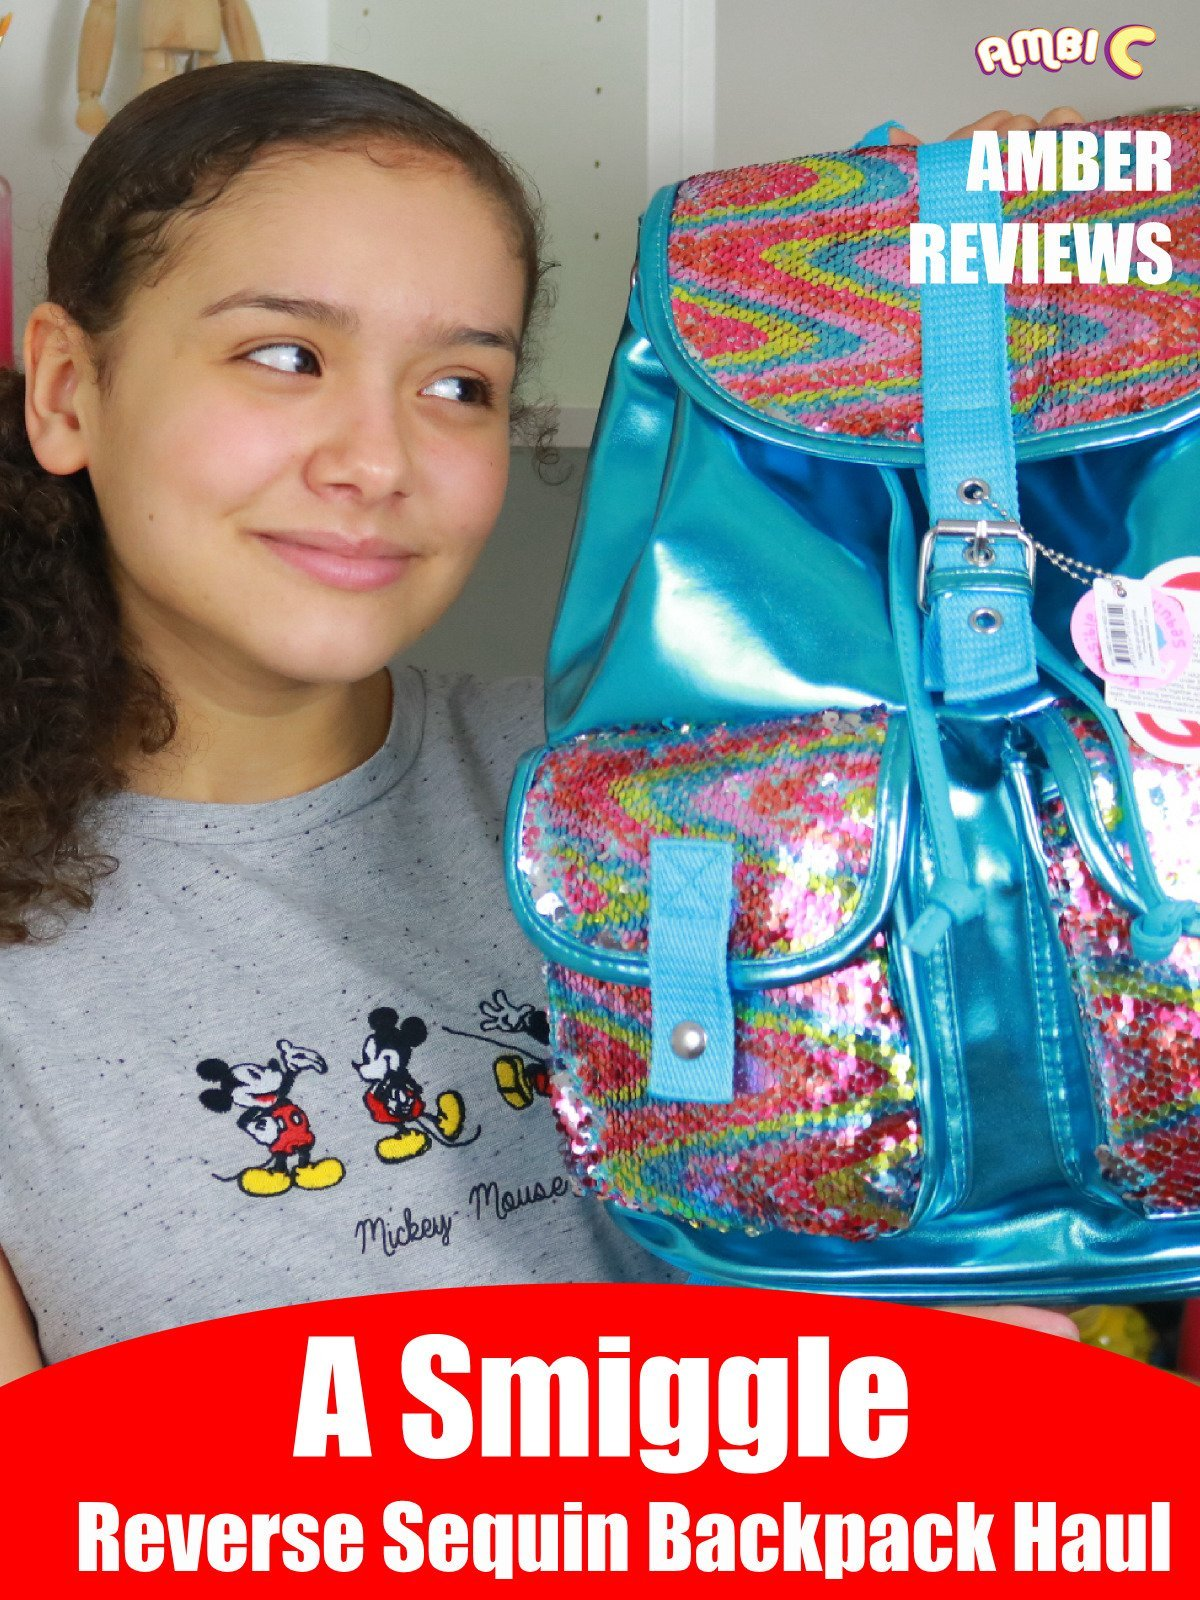 Amber Reviews a Smiggle Reverse Sequin Backpack Haul